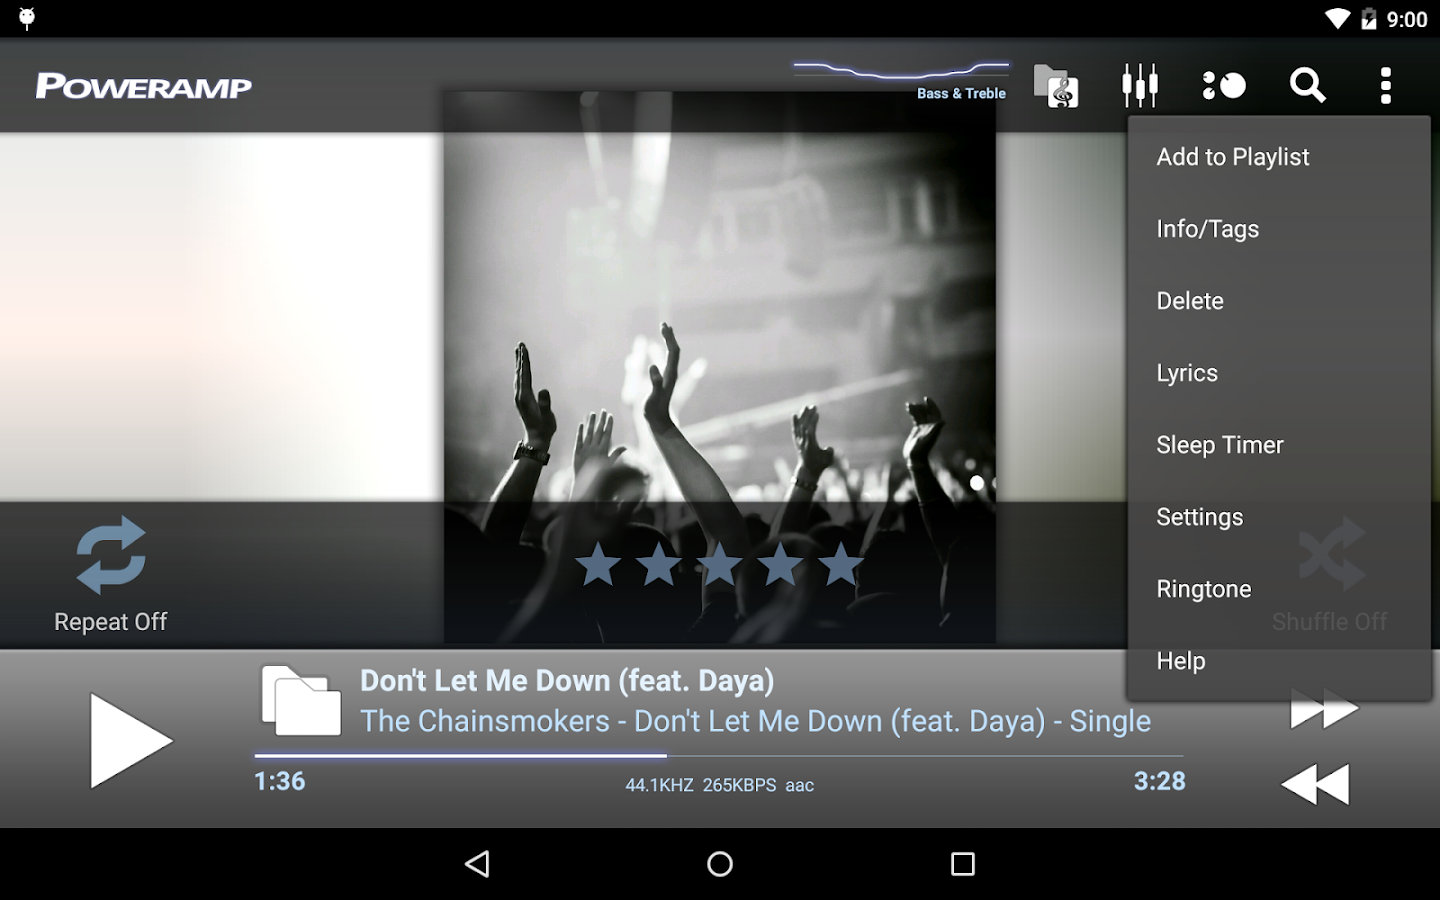 Poweramp Apk Pro Full Version Cracked Apk Free Download